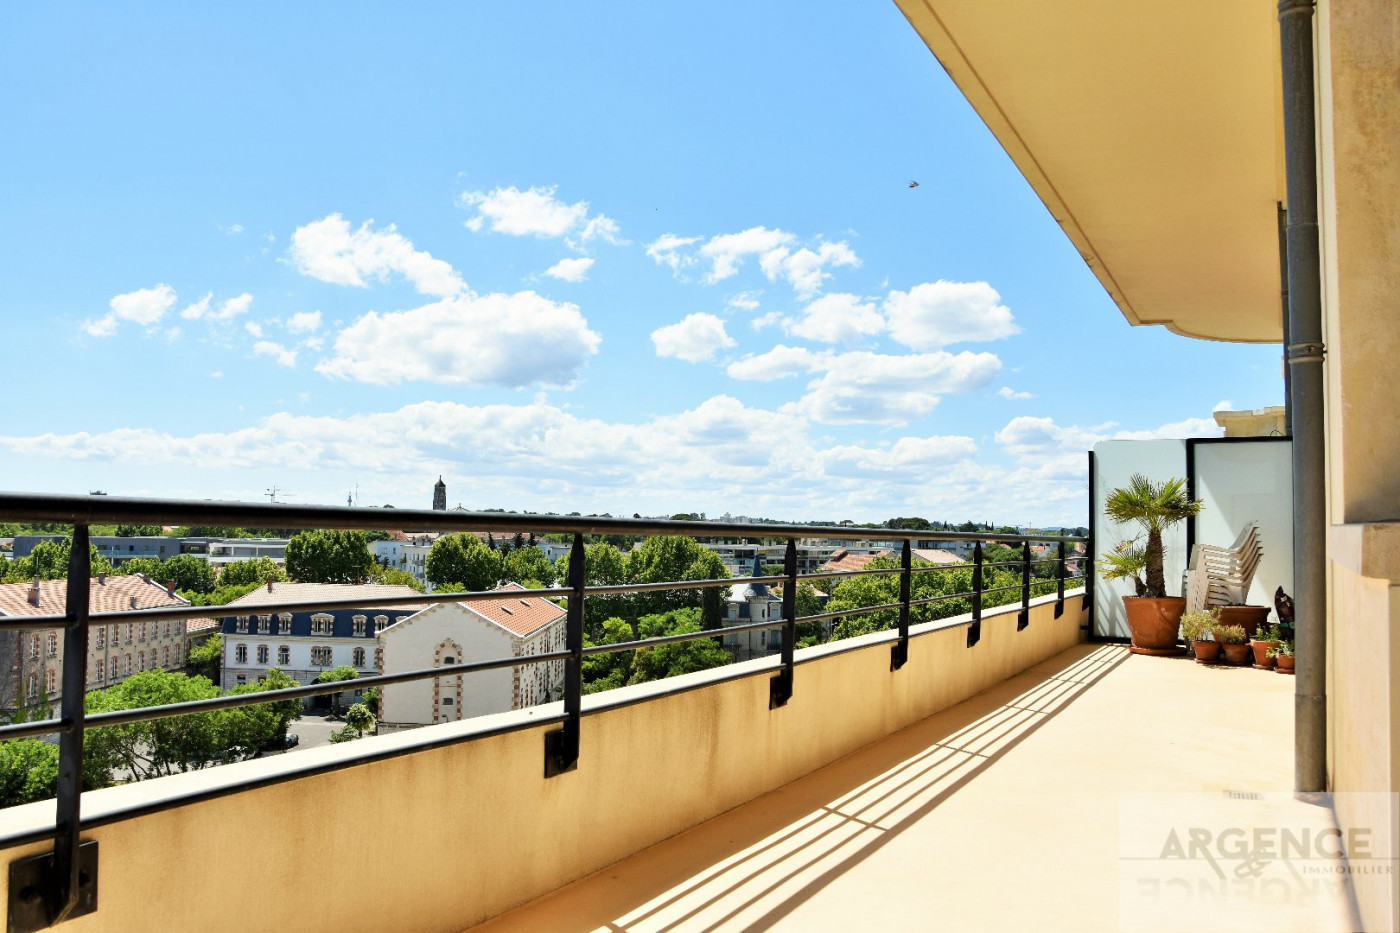 A vendre Montpellier 345335474 Argence immobilier